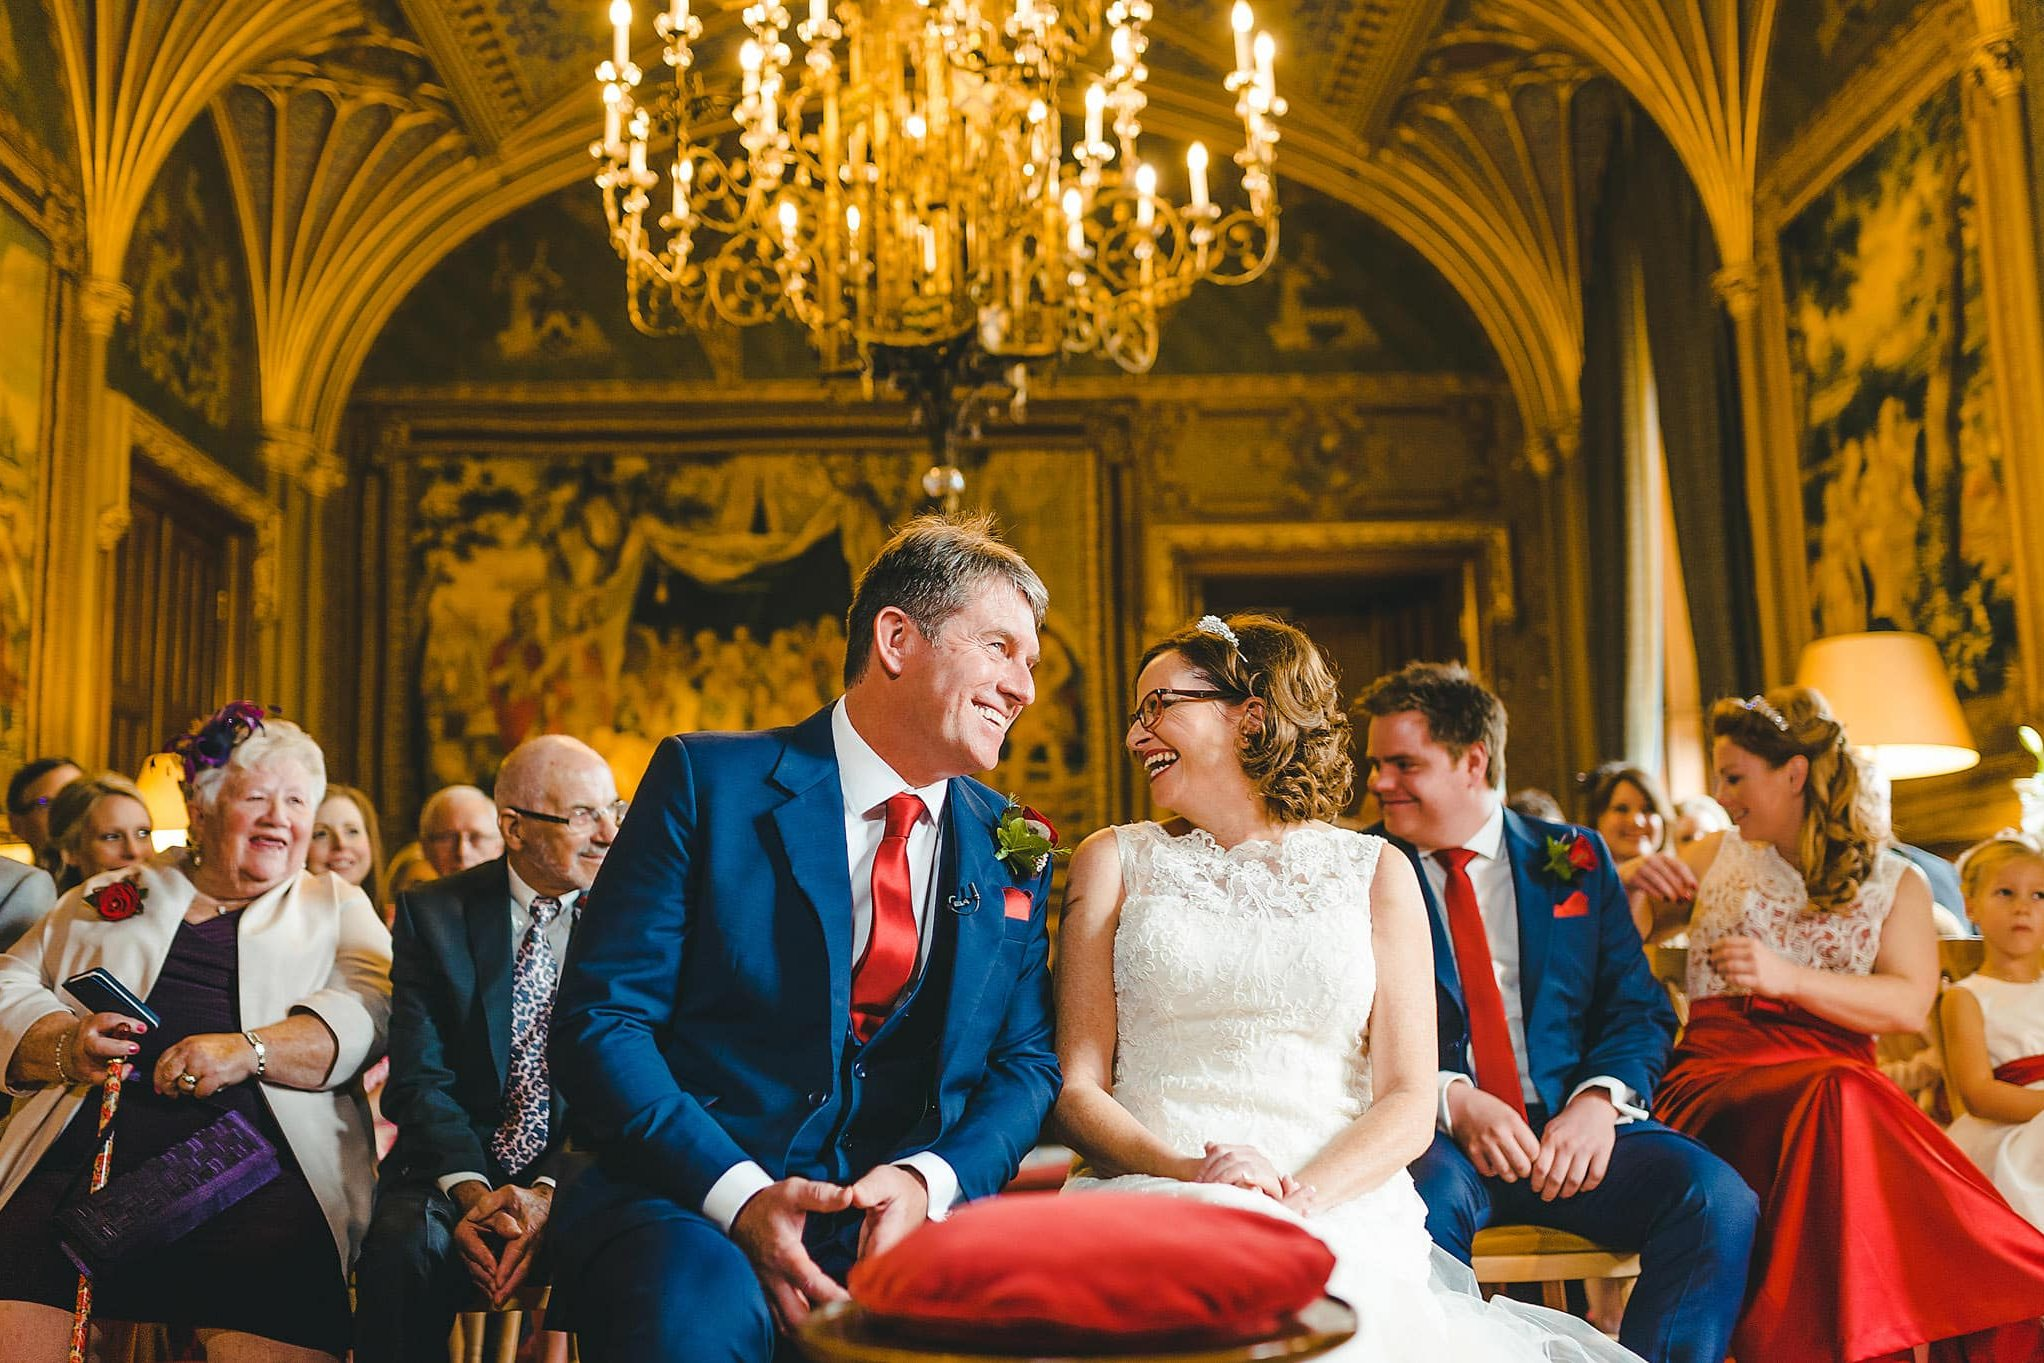 wedding-photography-at-eastnor-castle-in-herefordshire